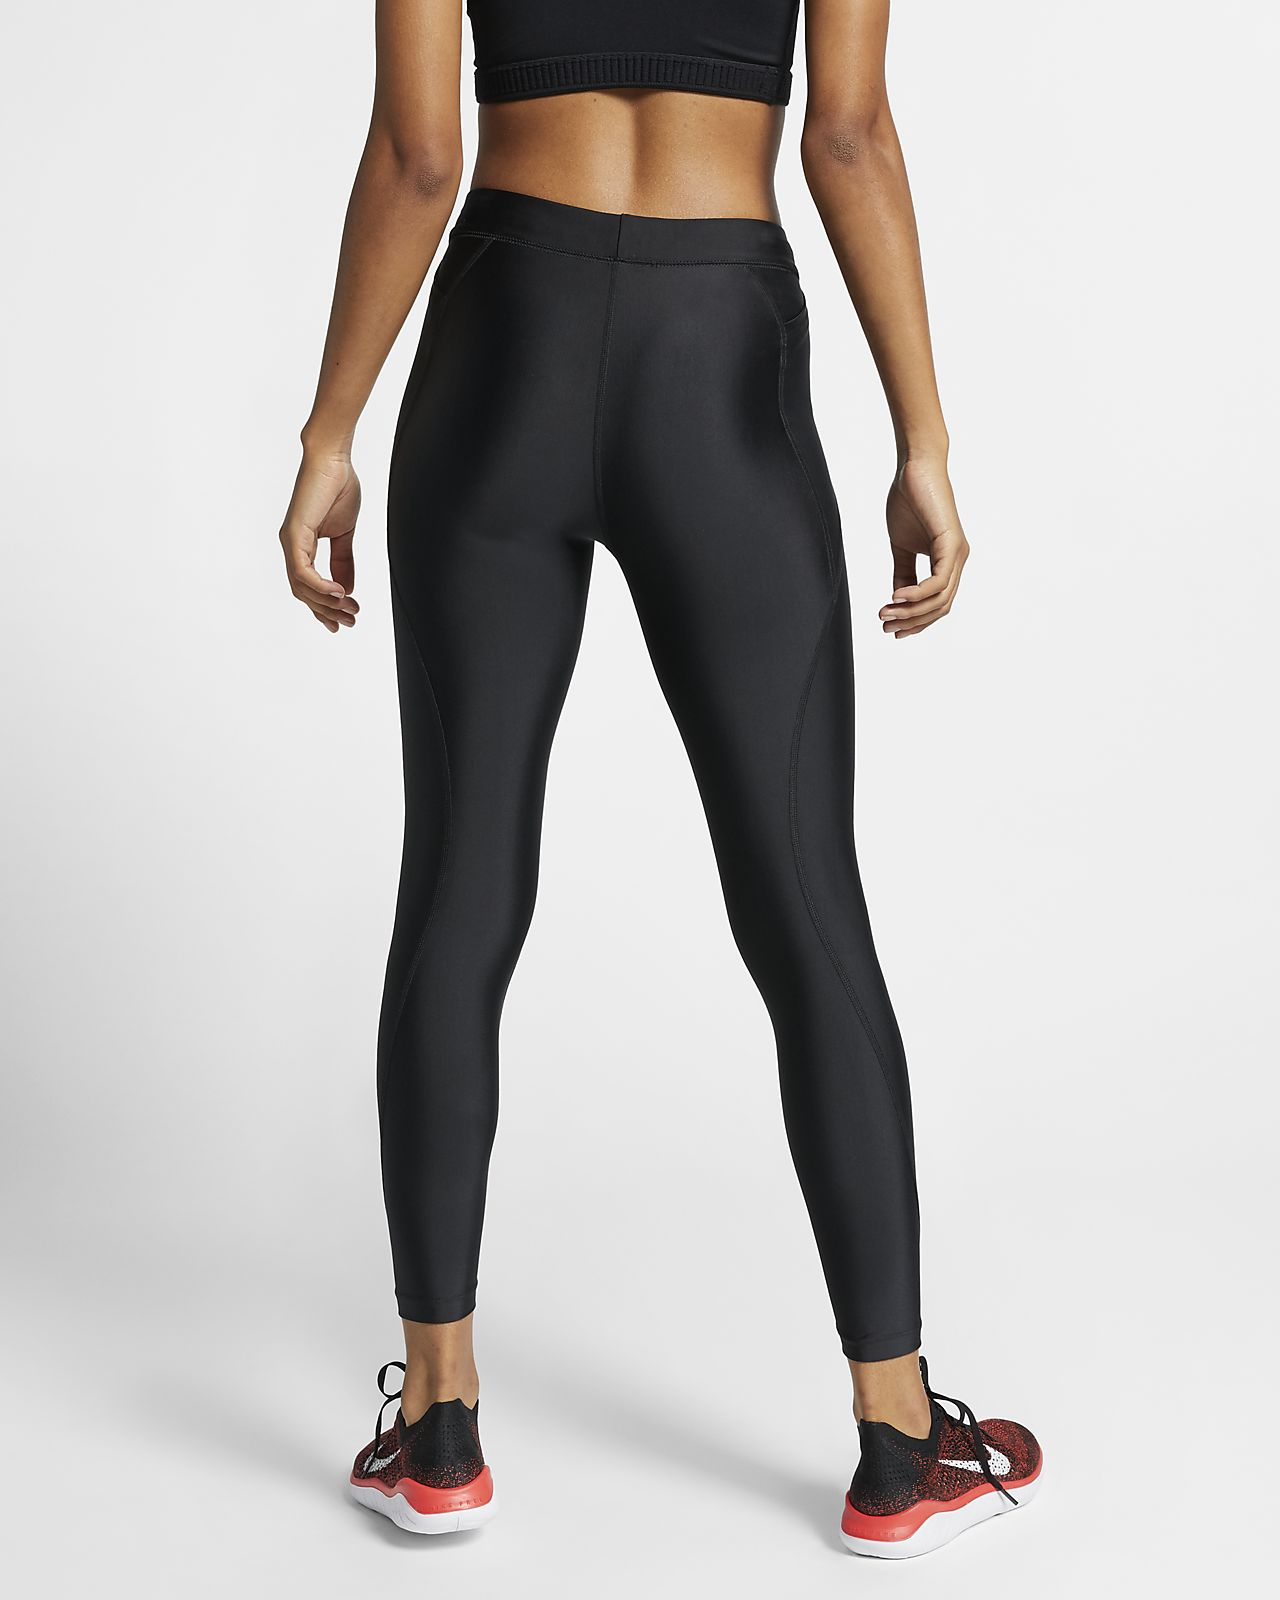 Nike Speed Women's 78 Leggings